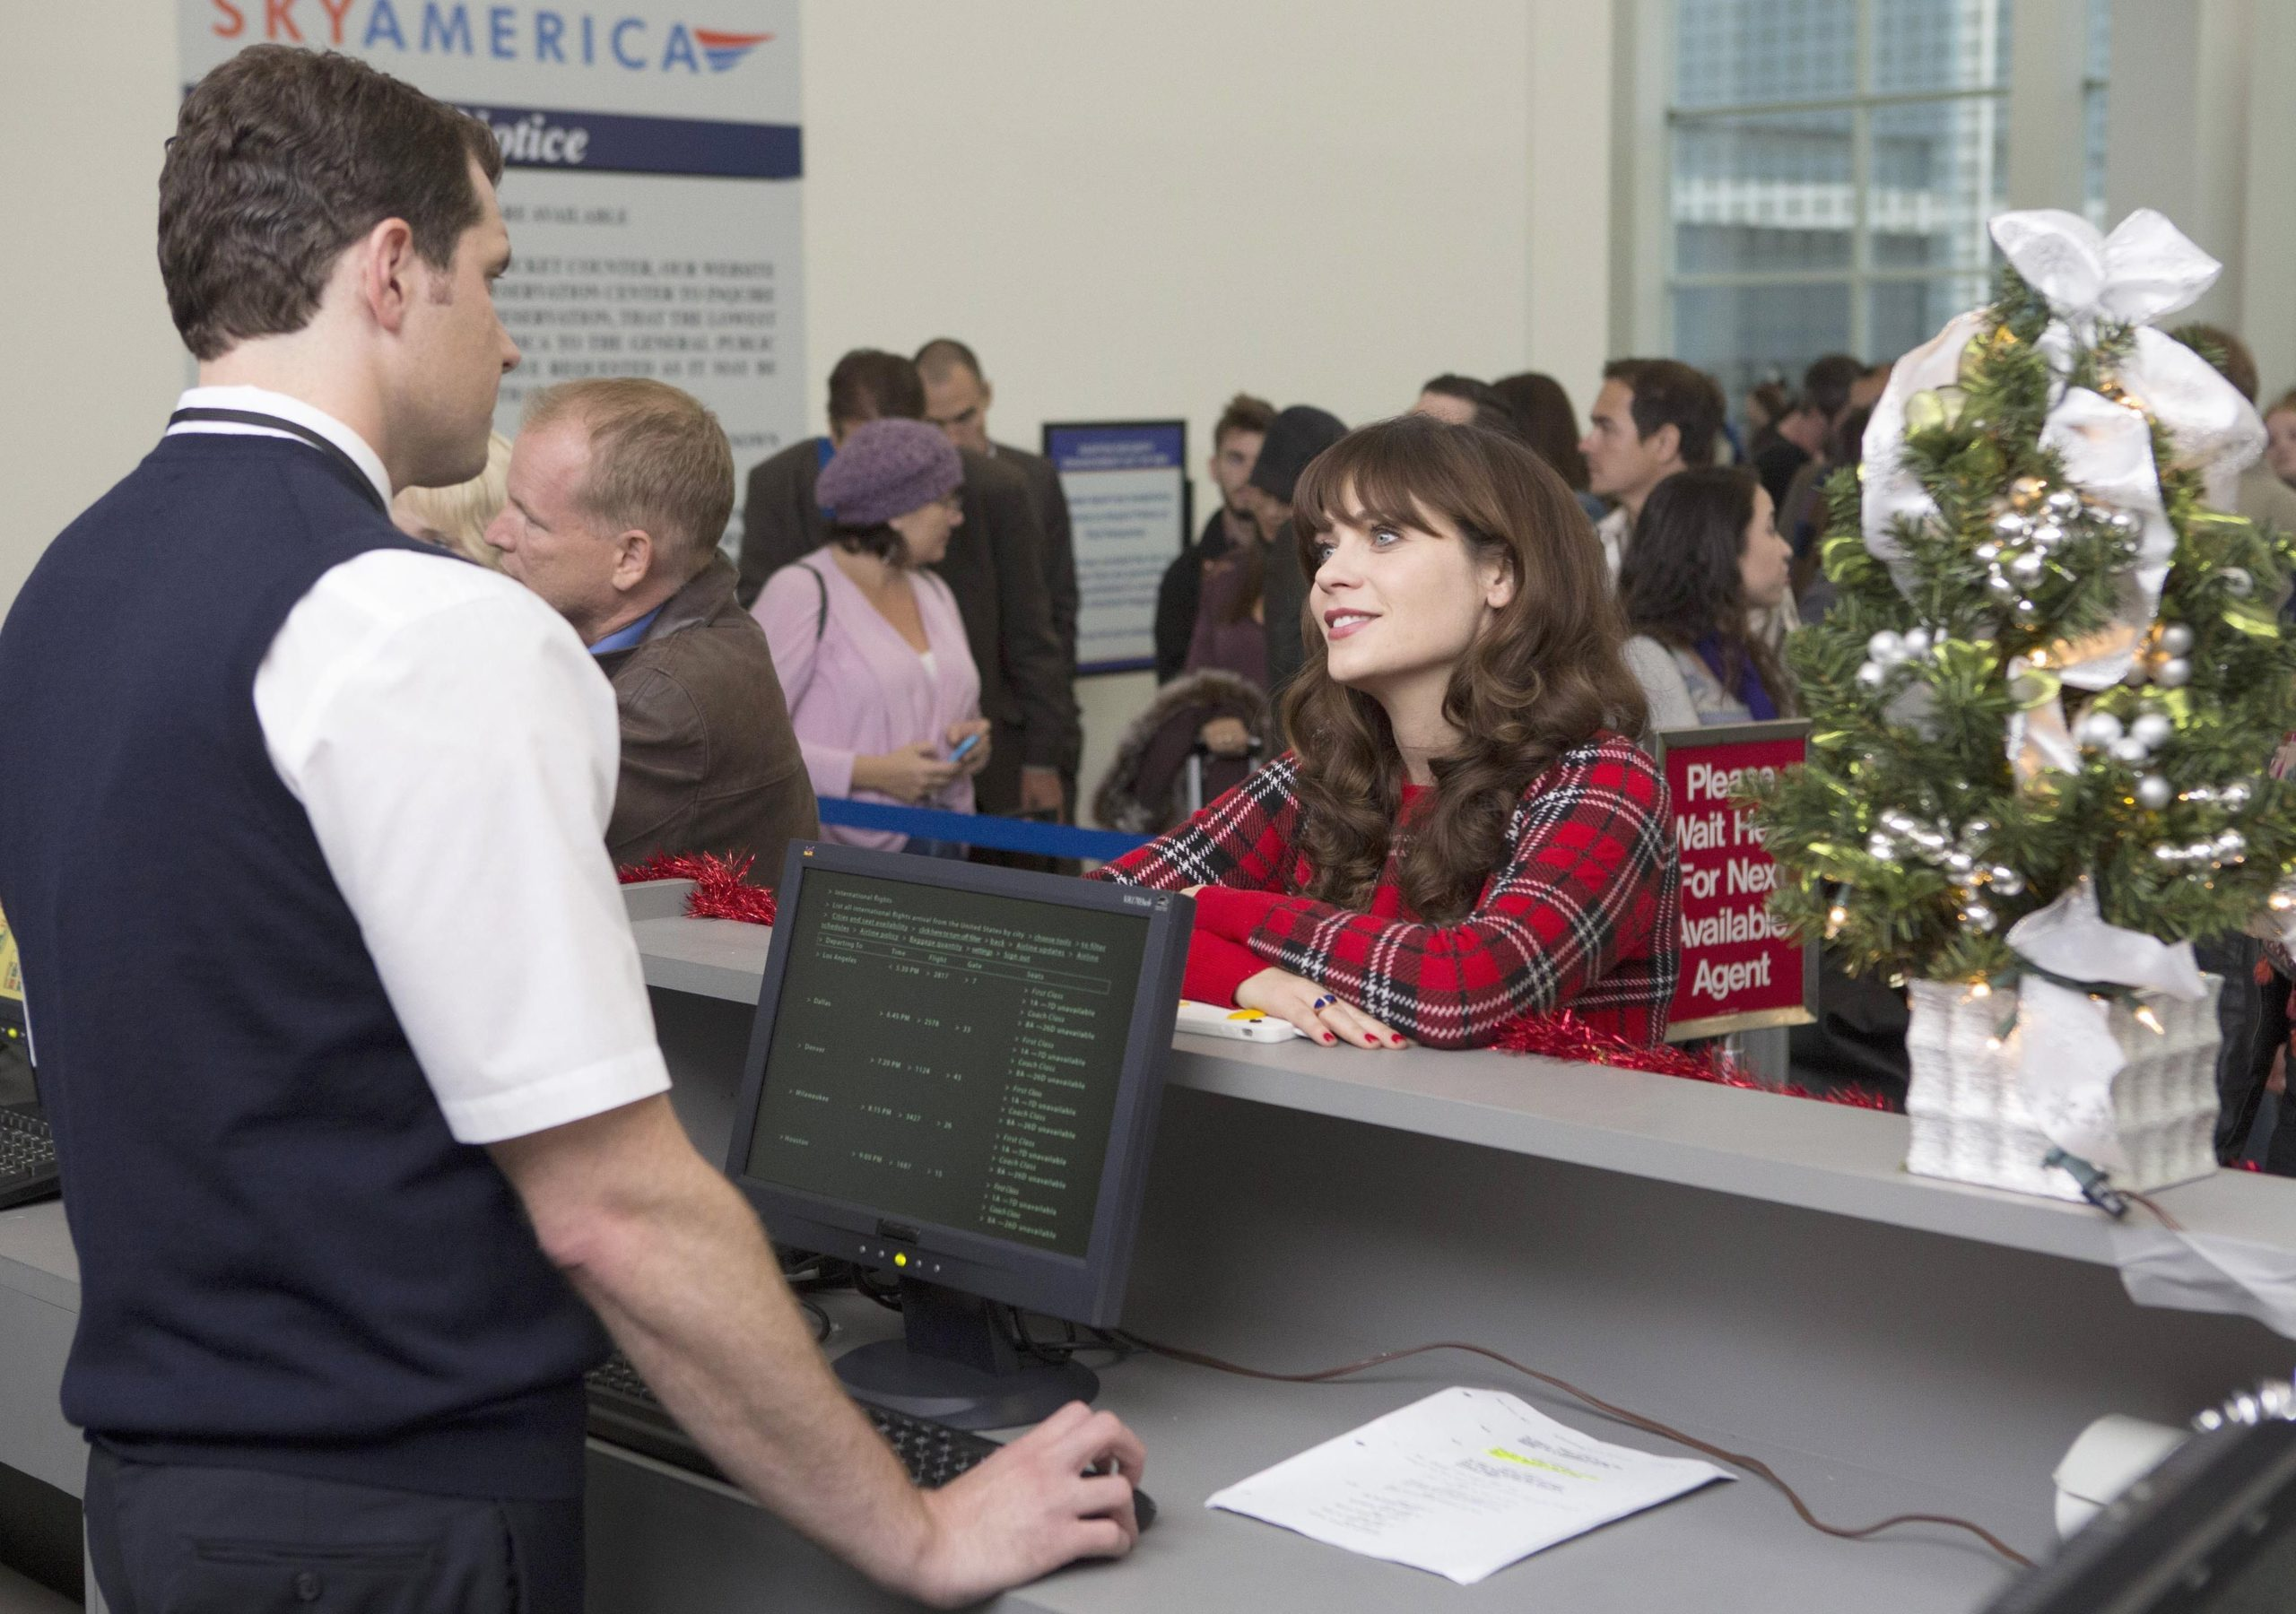 In sitcom New Girl, Jess stands at the ticket counter in the airport, talking to an employee.